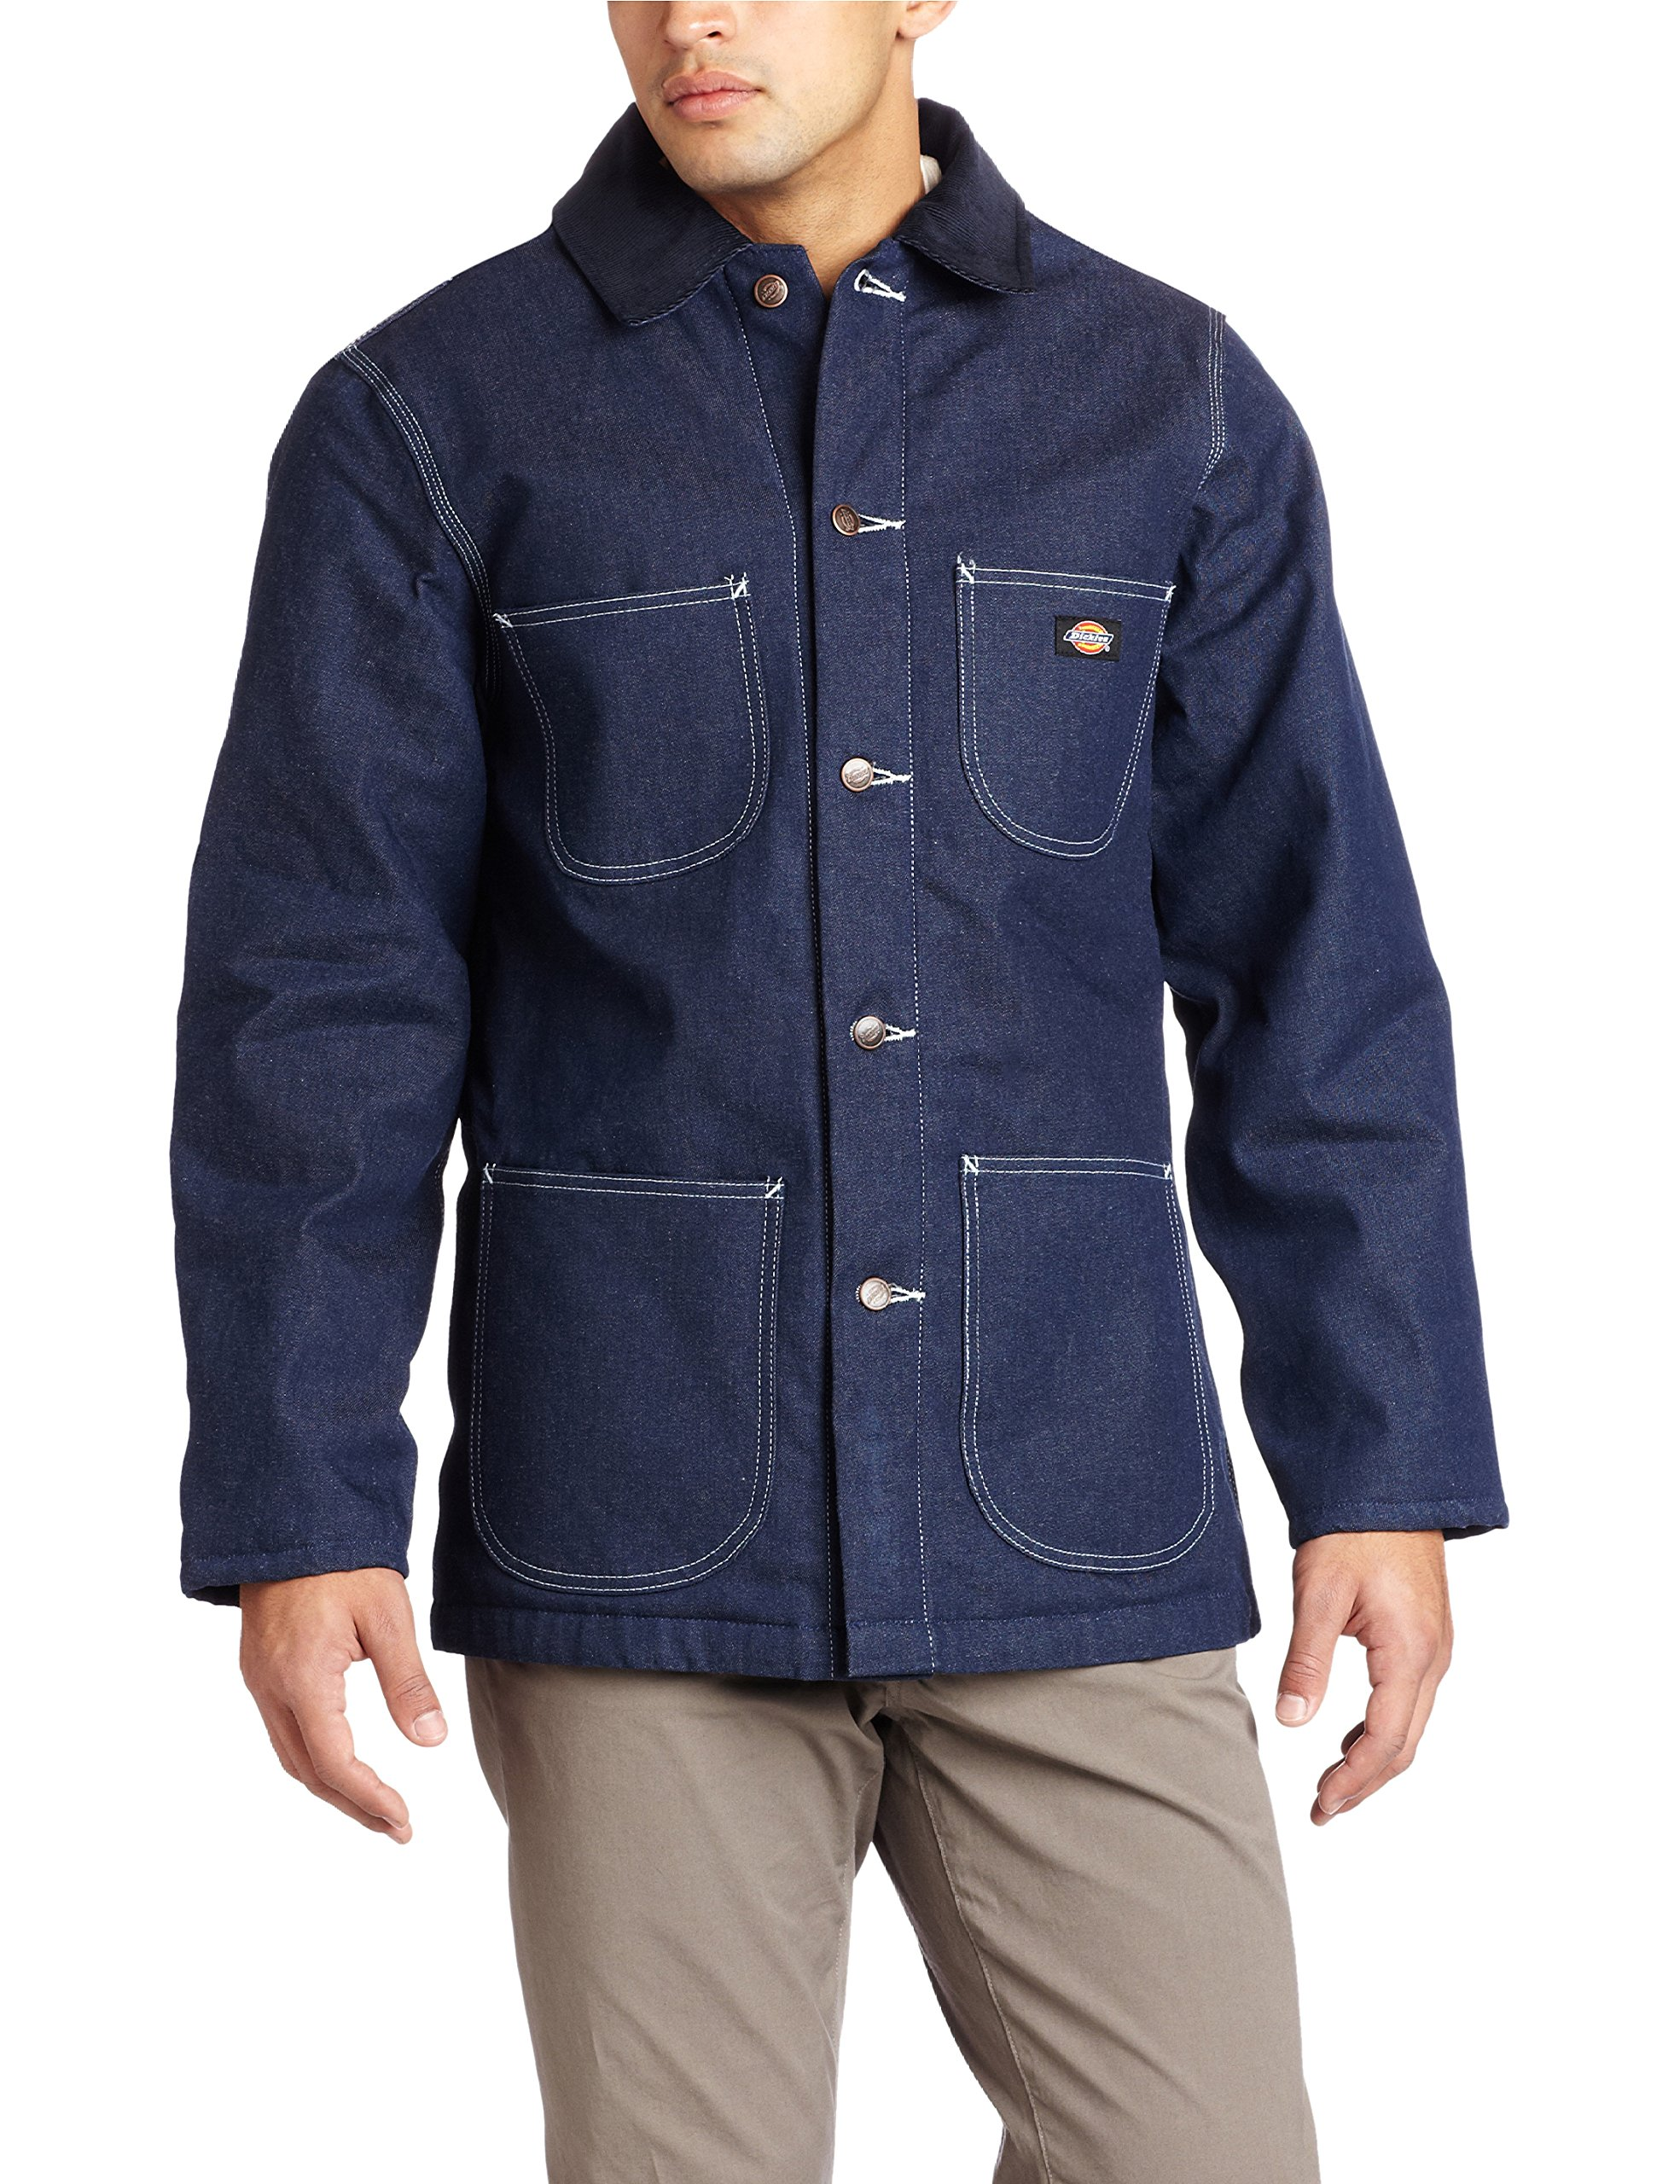 Dickies Men's Denim Blanket Lined Chore Coat, Blue, Large-Regular